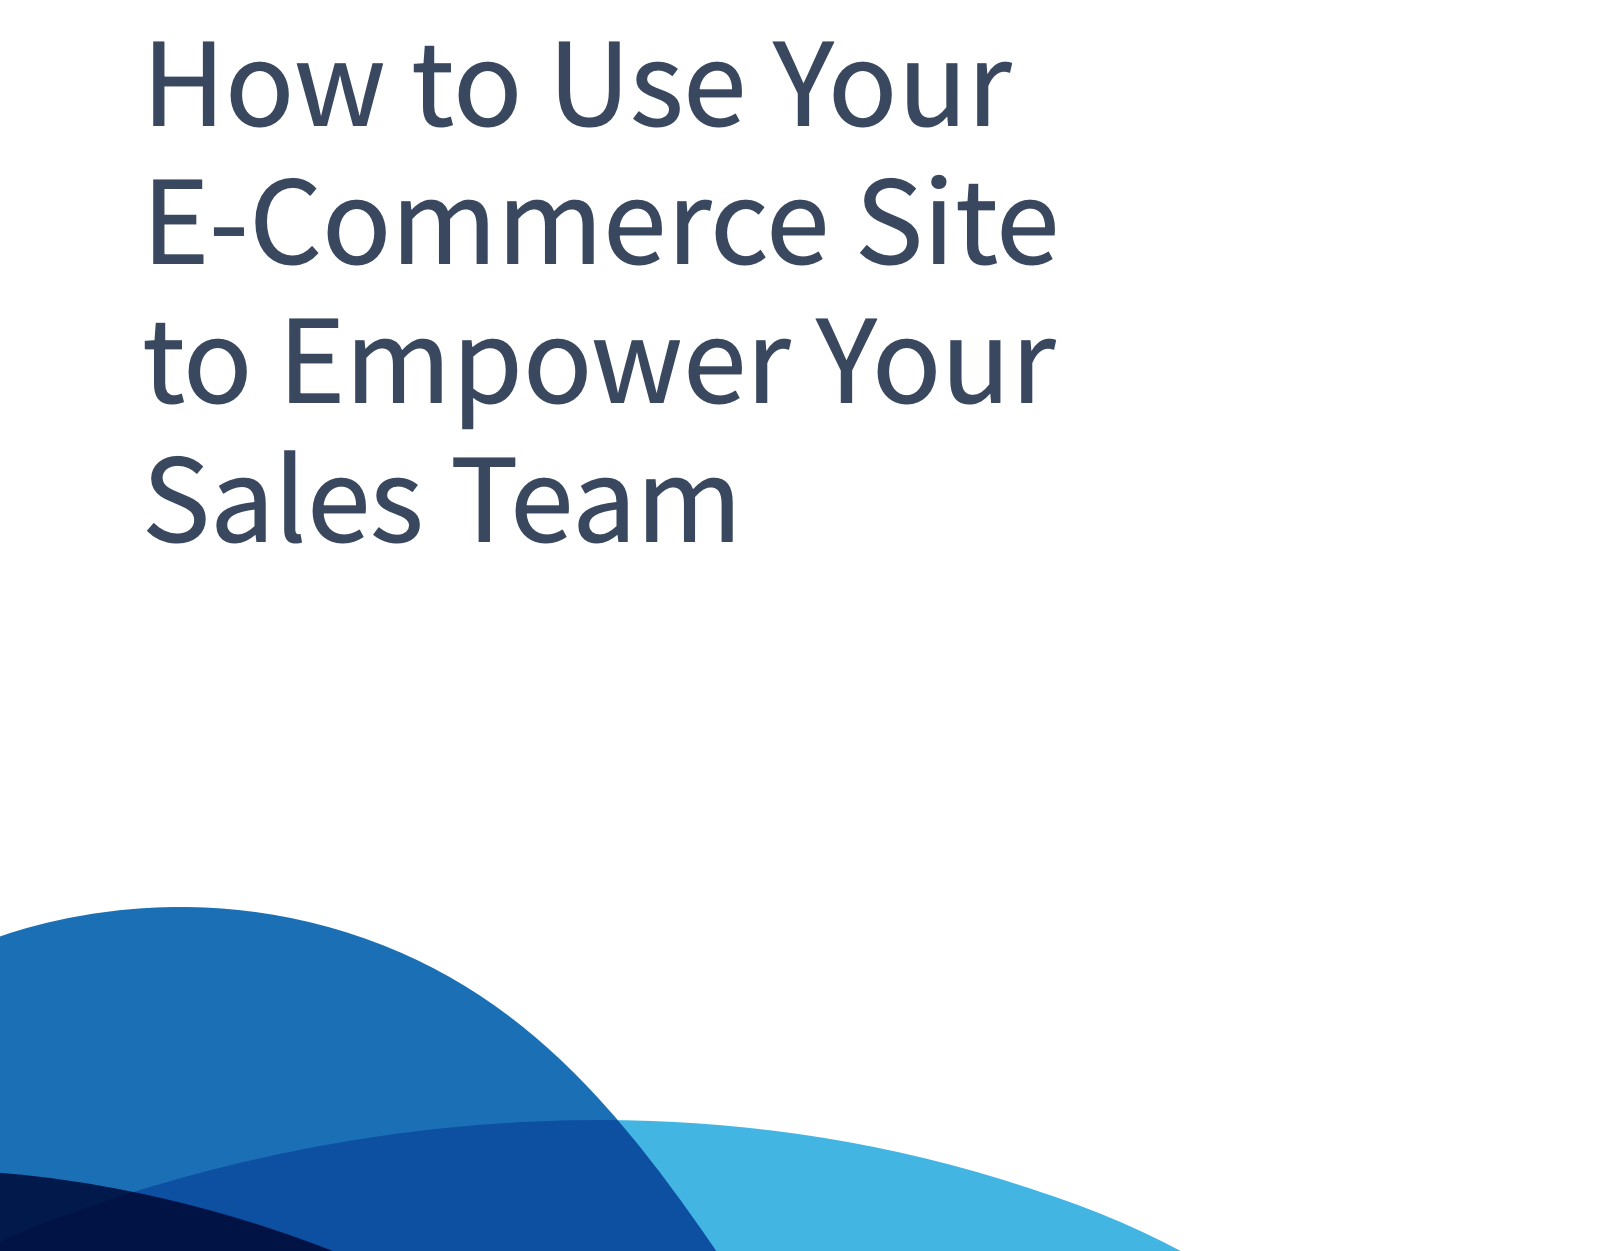 Use Your E-Commerce Site to Empower Your Sales Team